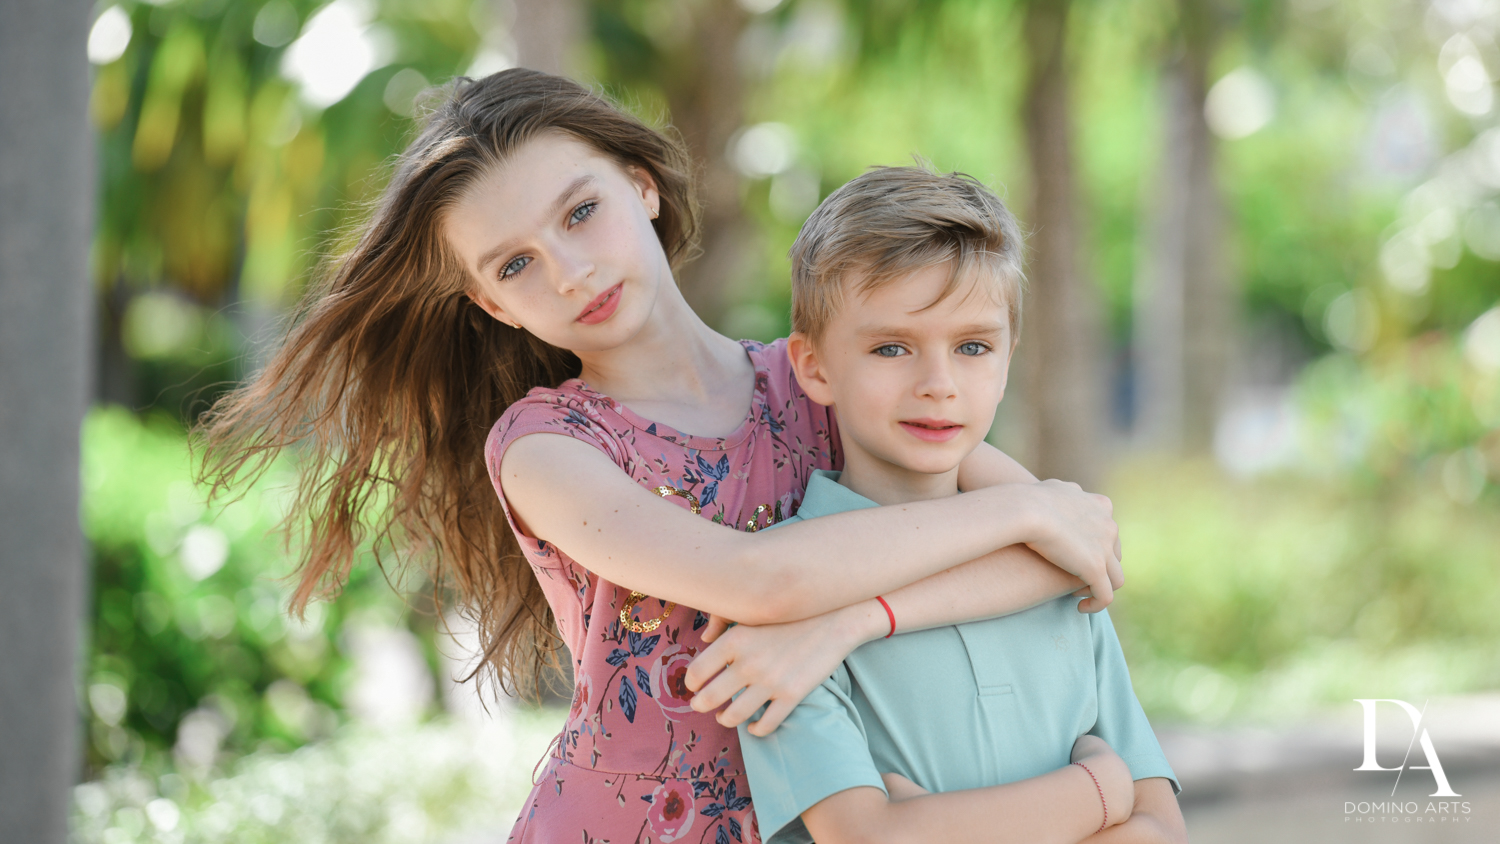 siblings pictures at Family Photo Session Riverwalk Fort Lauderdale by Domino Arts Photography